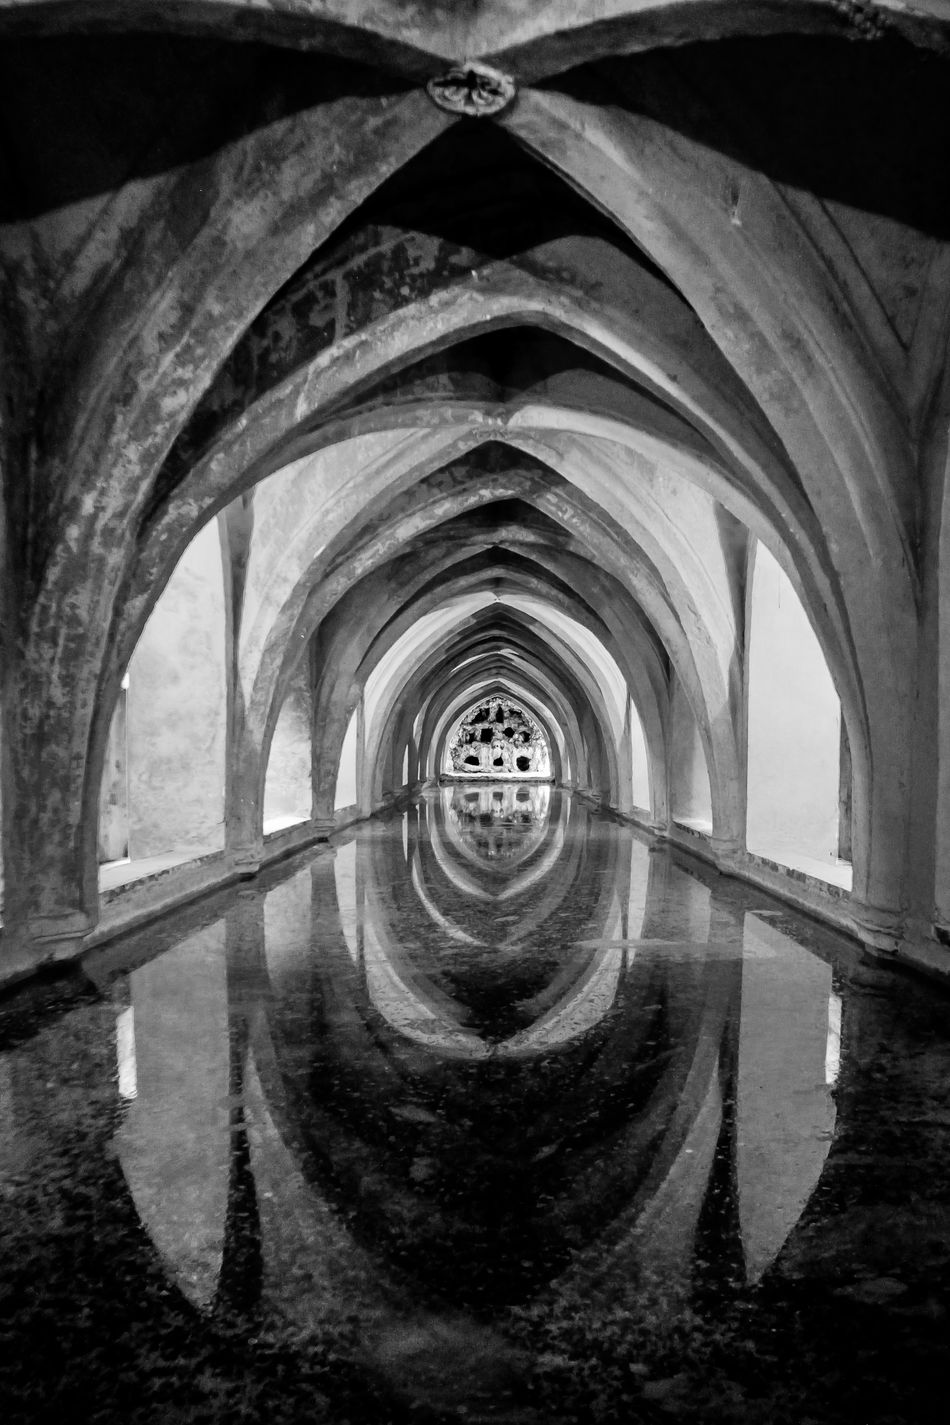 Aljibe Arch Architecture Architecture_collection Archs Black & White Black And White Blackandwhite Bnw Boveda Built Structure Check This Out Day EyeEm Gallery Indoors  No People Reales Alcazares De Sevilla Realesalcazares Tunnel Vision Water Water Reflection Water Reflections Malephotographerofthemonth Welcome To Black The Secret Spaces